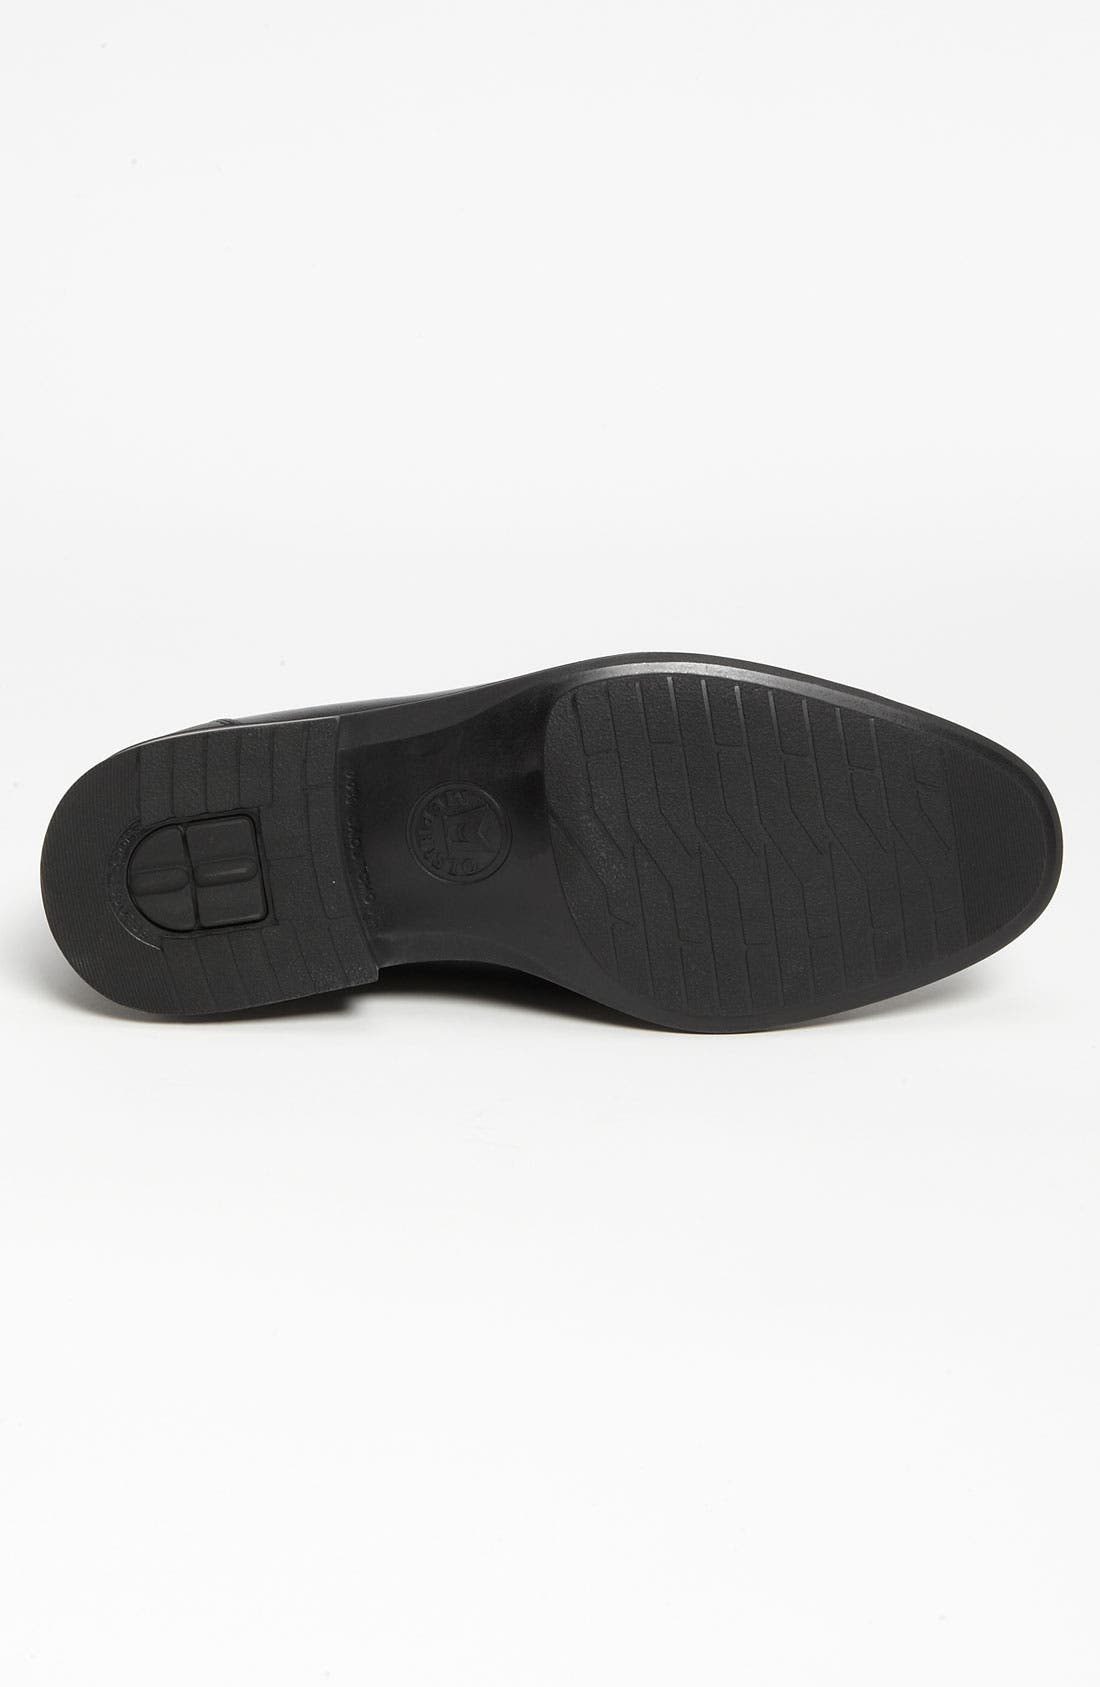 Fortino Loafer,                             Alternate thumbnail 10, color,                             001